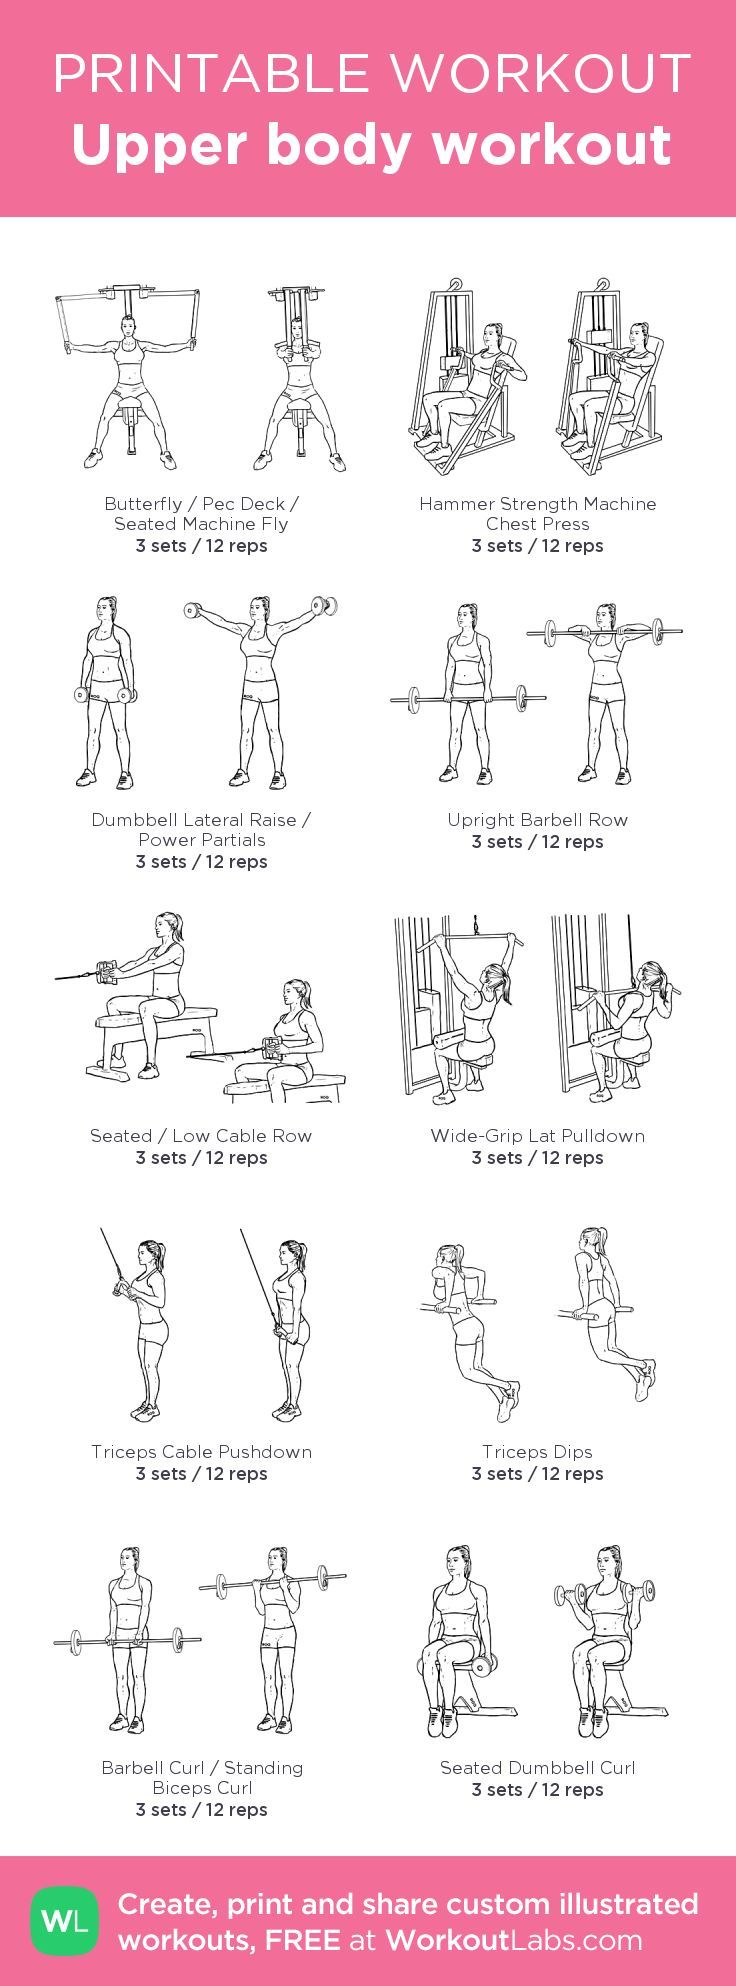 Beginner upper body workout – my custom workout was created by WorkoutLabs.com – Workouts